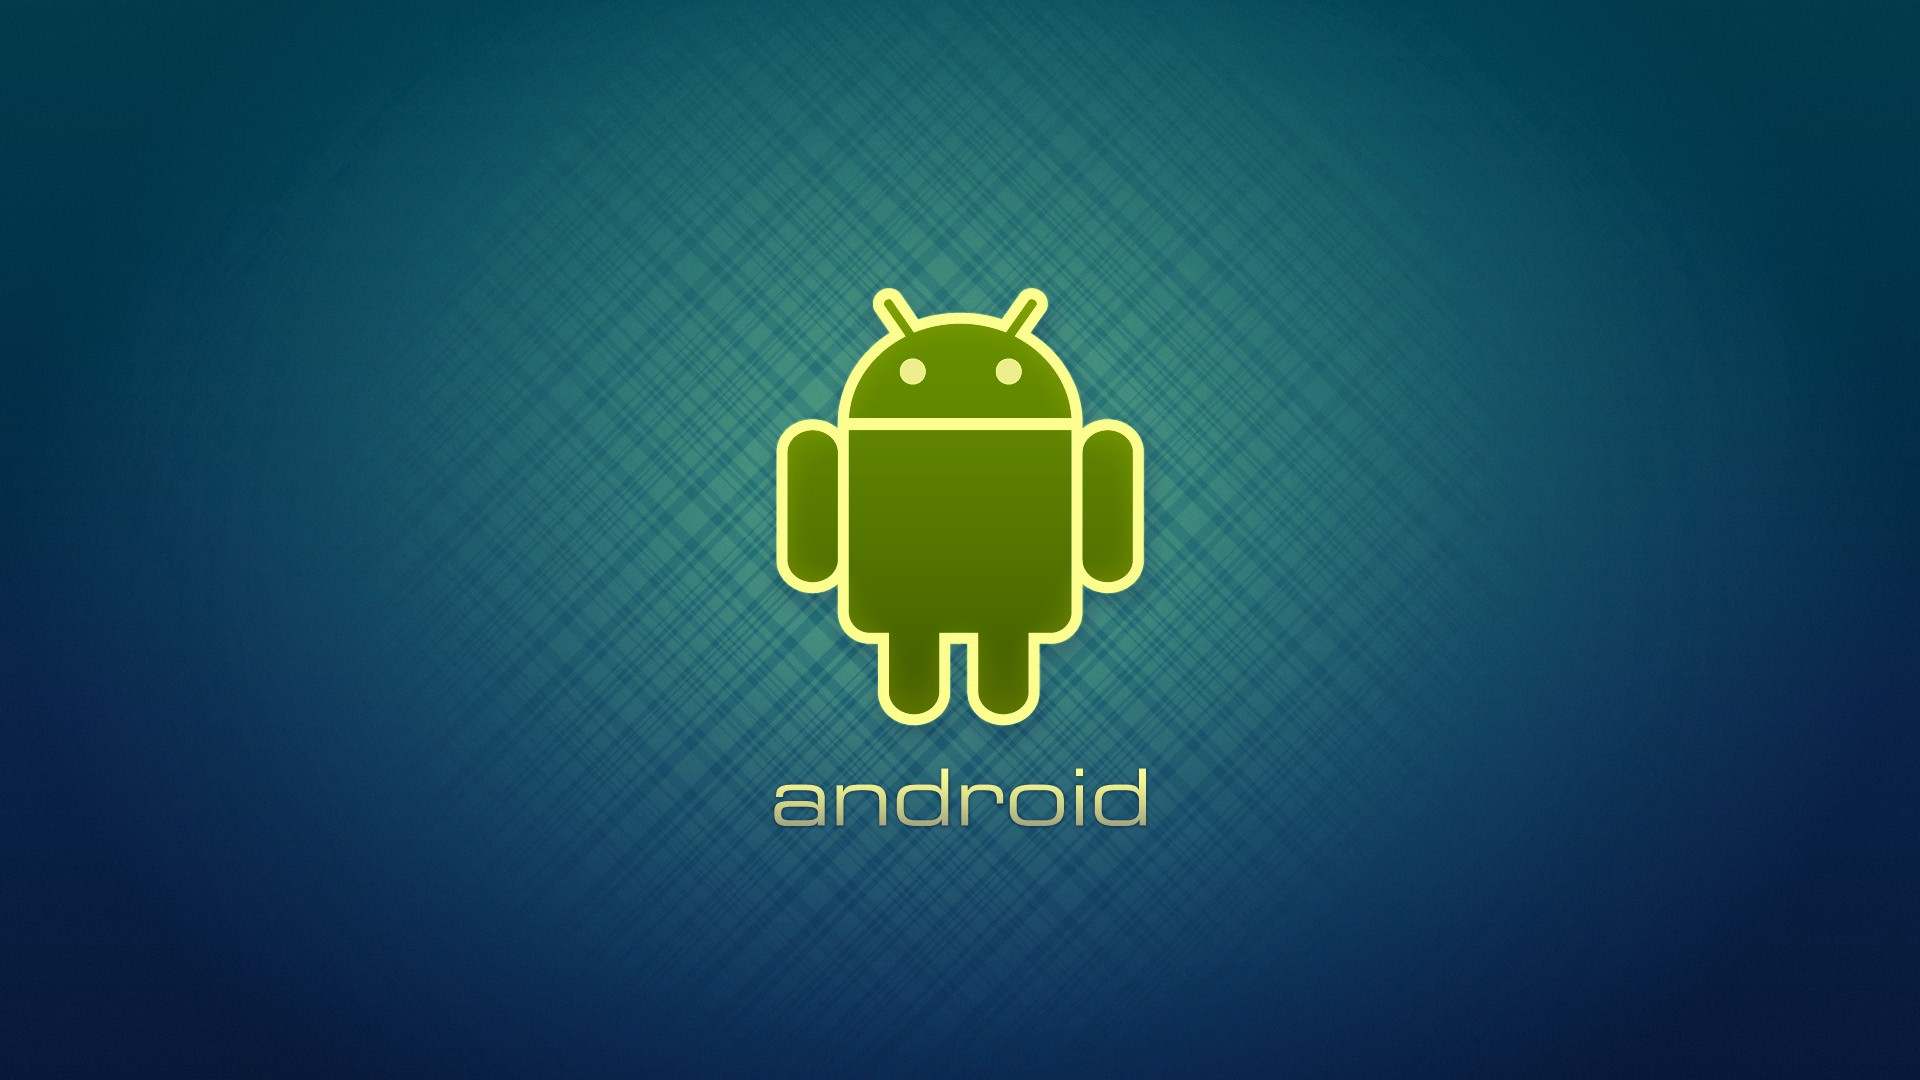 download android live wallpapers background hd wallpaperjpg 1920x1080